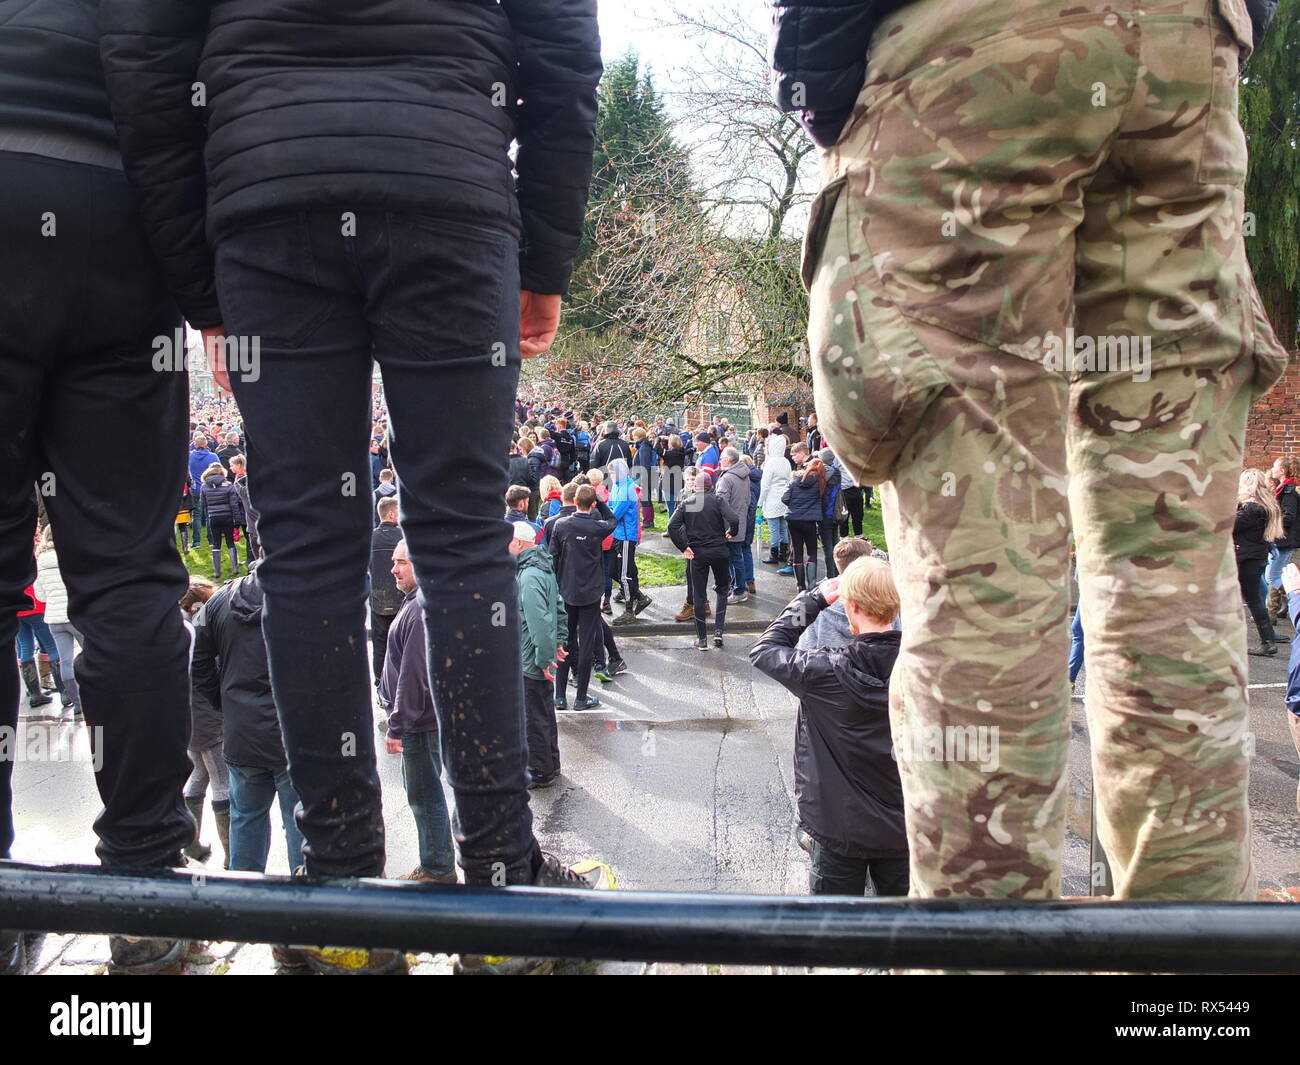 Ashbourne Shrovetide Football 2019. Players stand on wall trying to assess the direction the ball is moving in during the Ash Wednesday game. Stock Photo